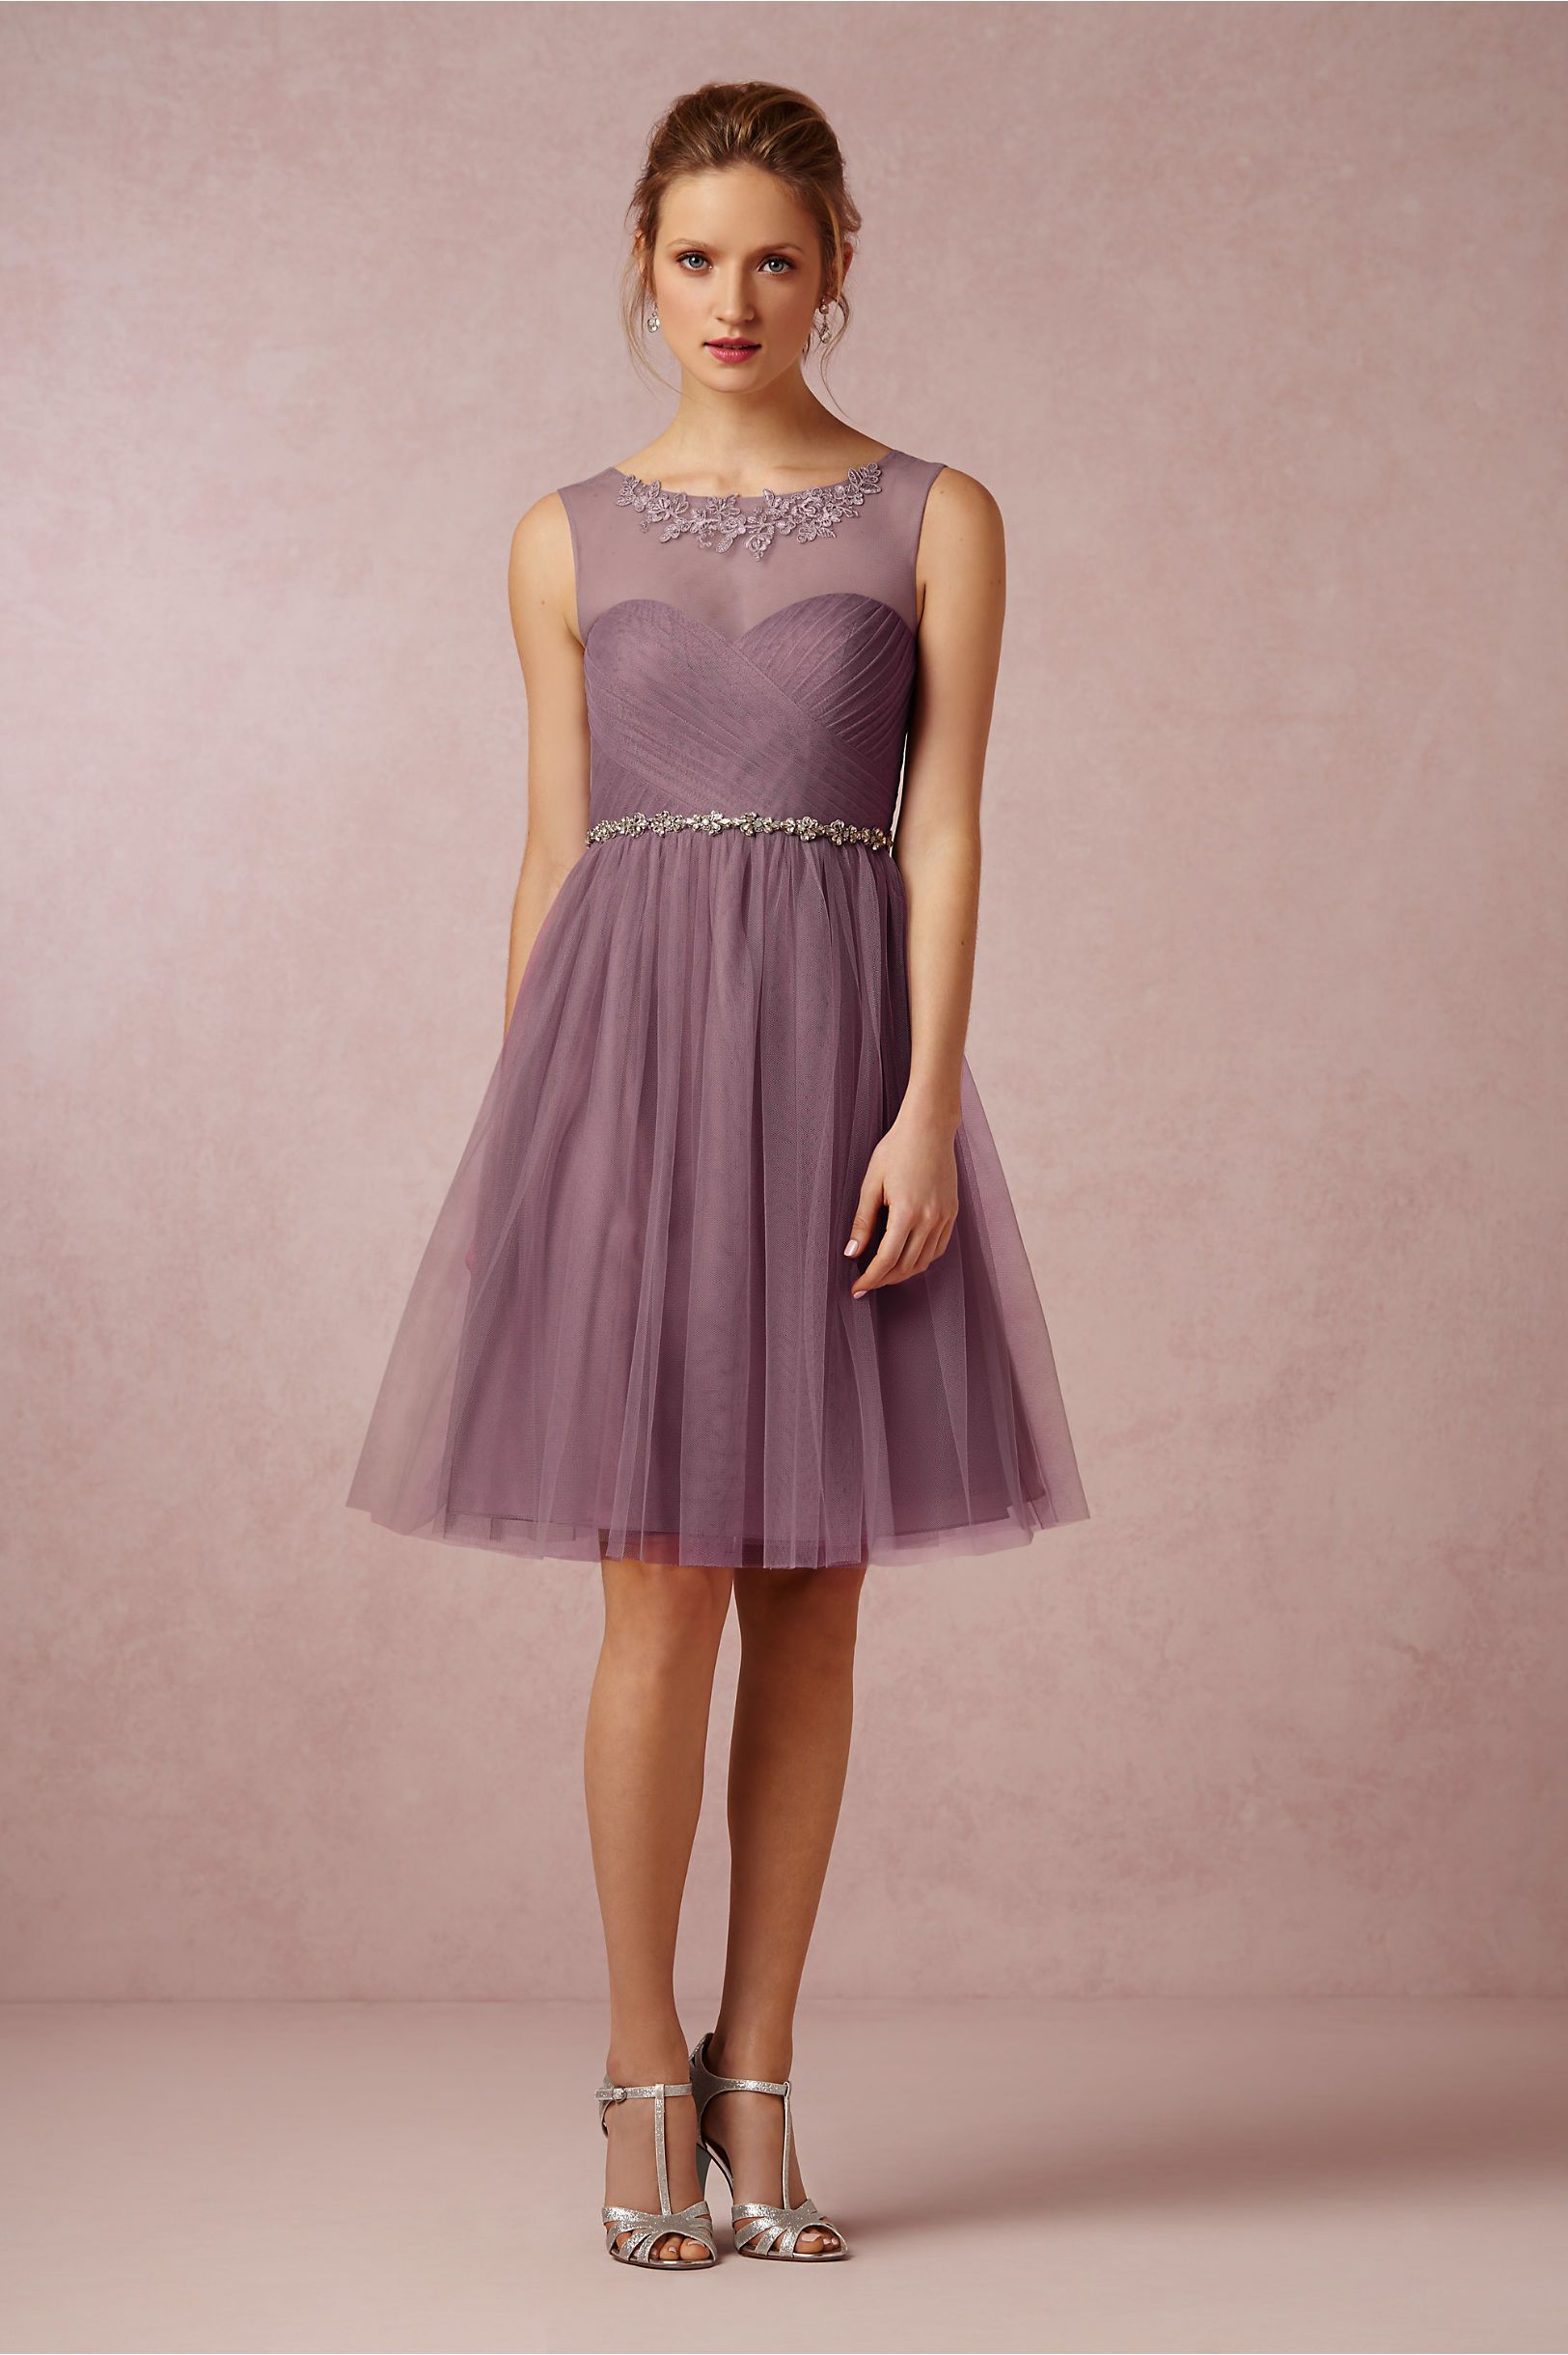 Chloe bridesmaids dress on soft plum jenny yoo exclusive for chloe bridesmaids dress on soft plum jenny yoo exclusive for bhldn ombrellifo Gallery